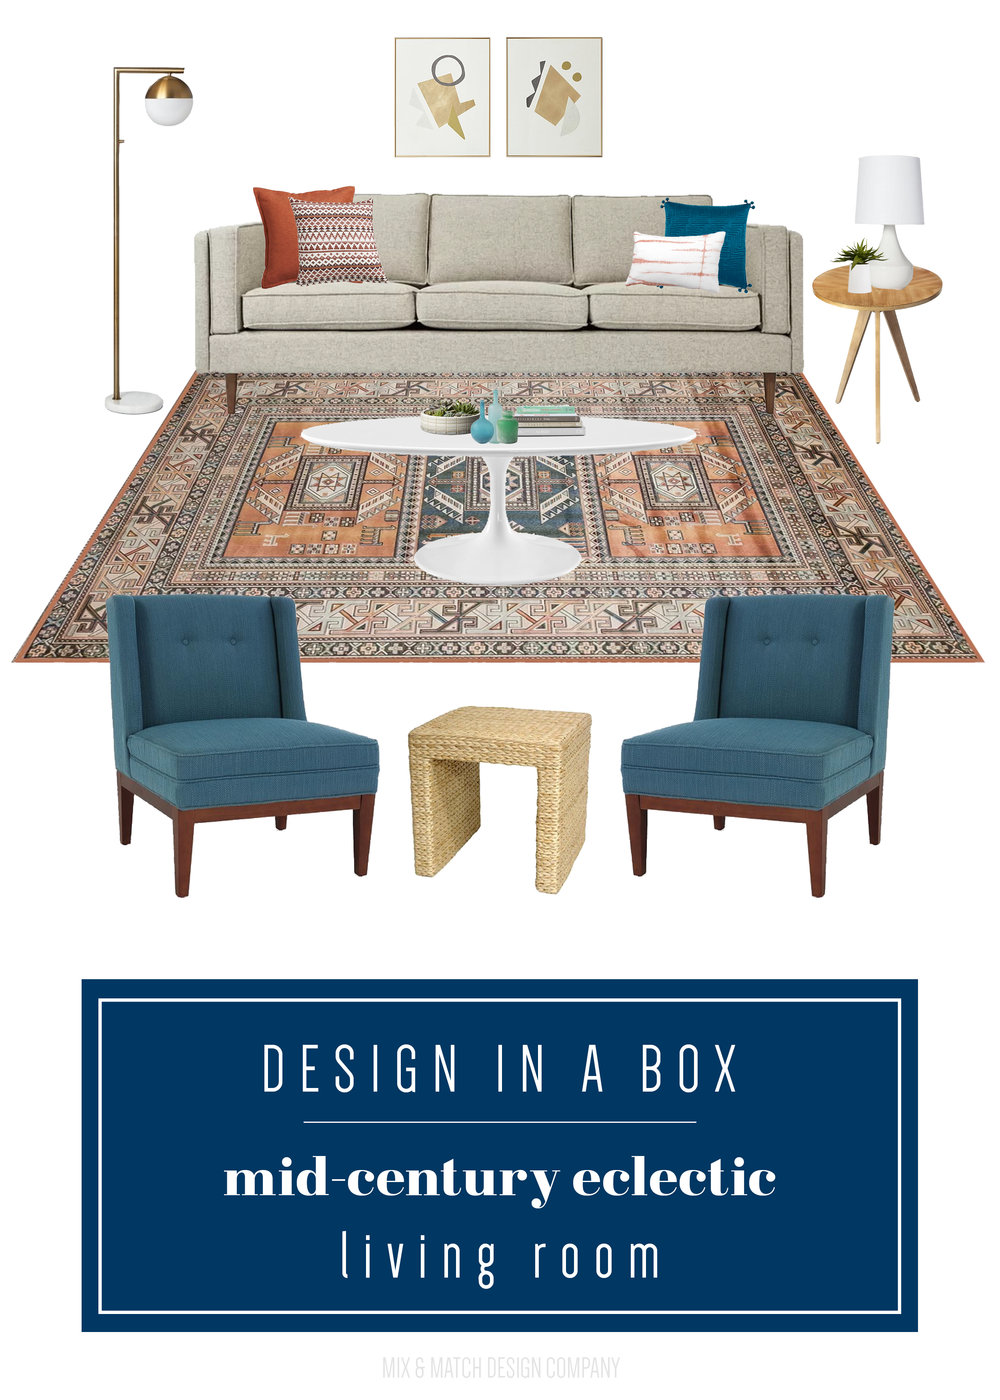 Through The Design In A Box Series, You Can Get The Sources For This Look